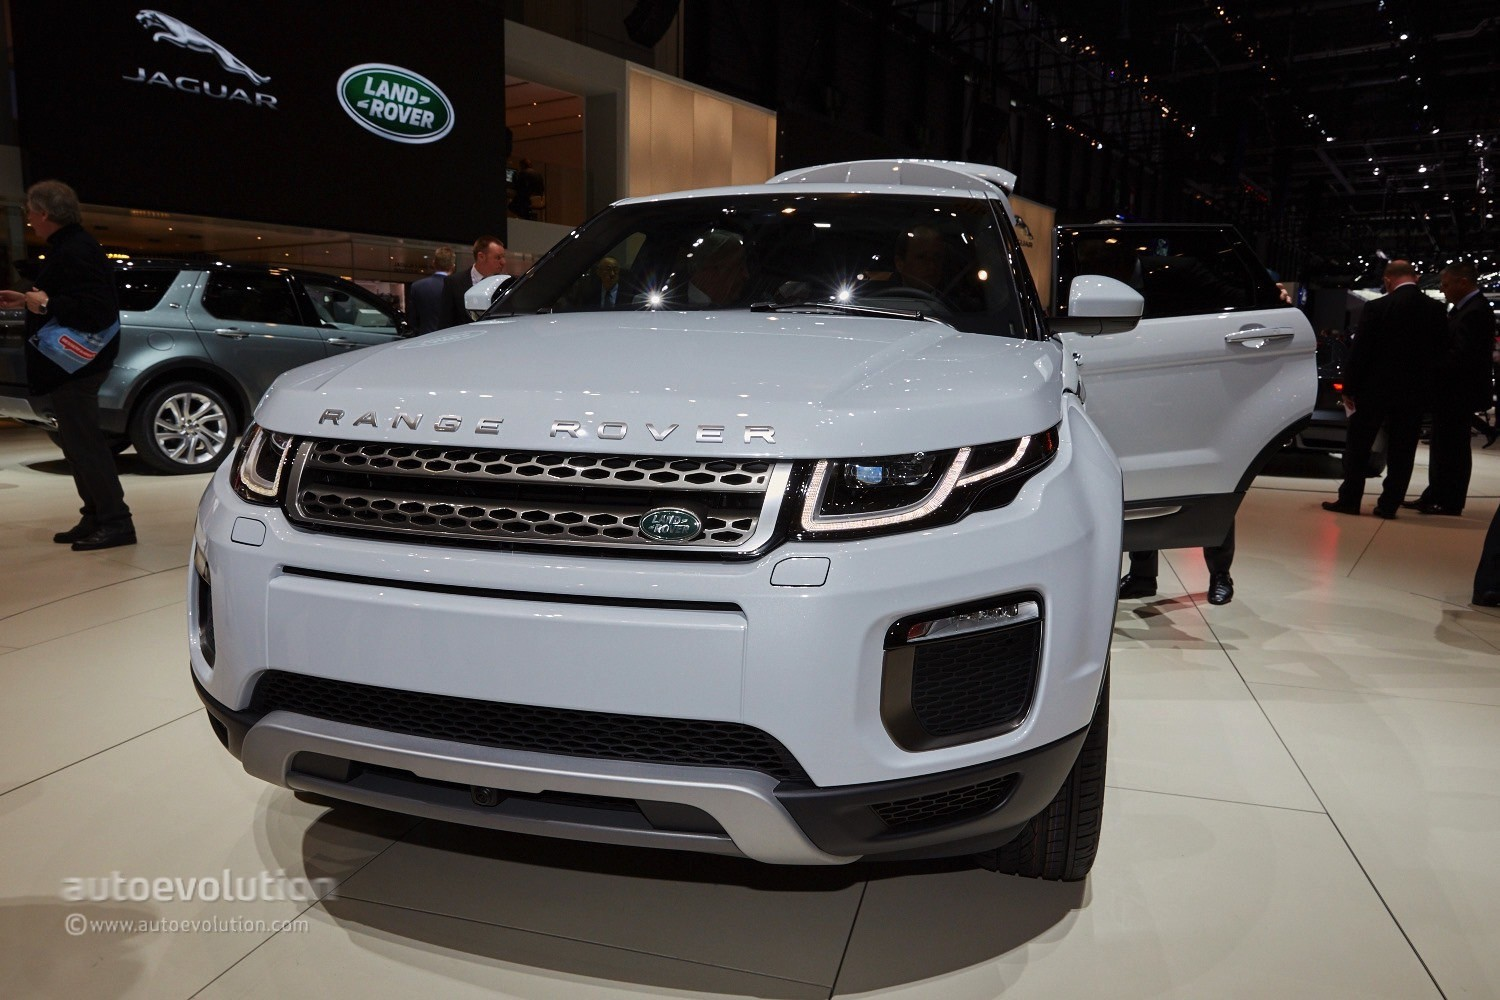 2015 Range Rover Evoque Shown In The Metal For The First